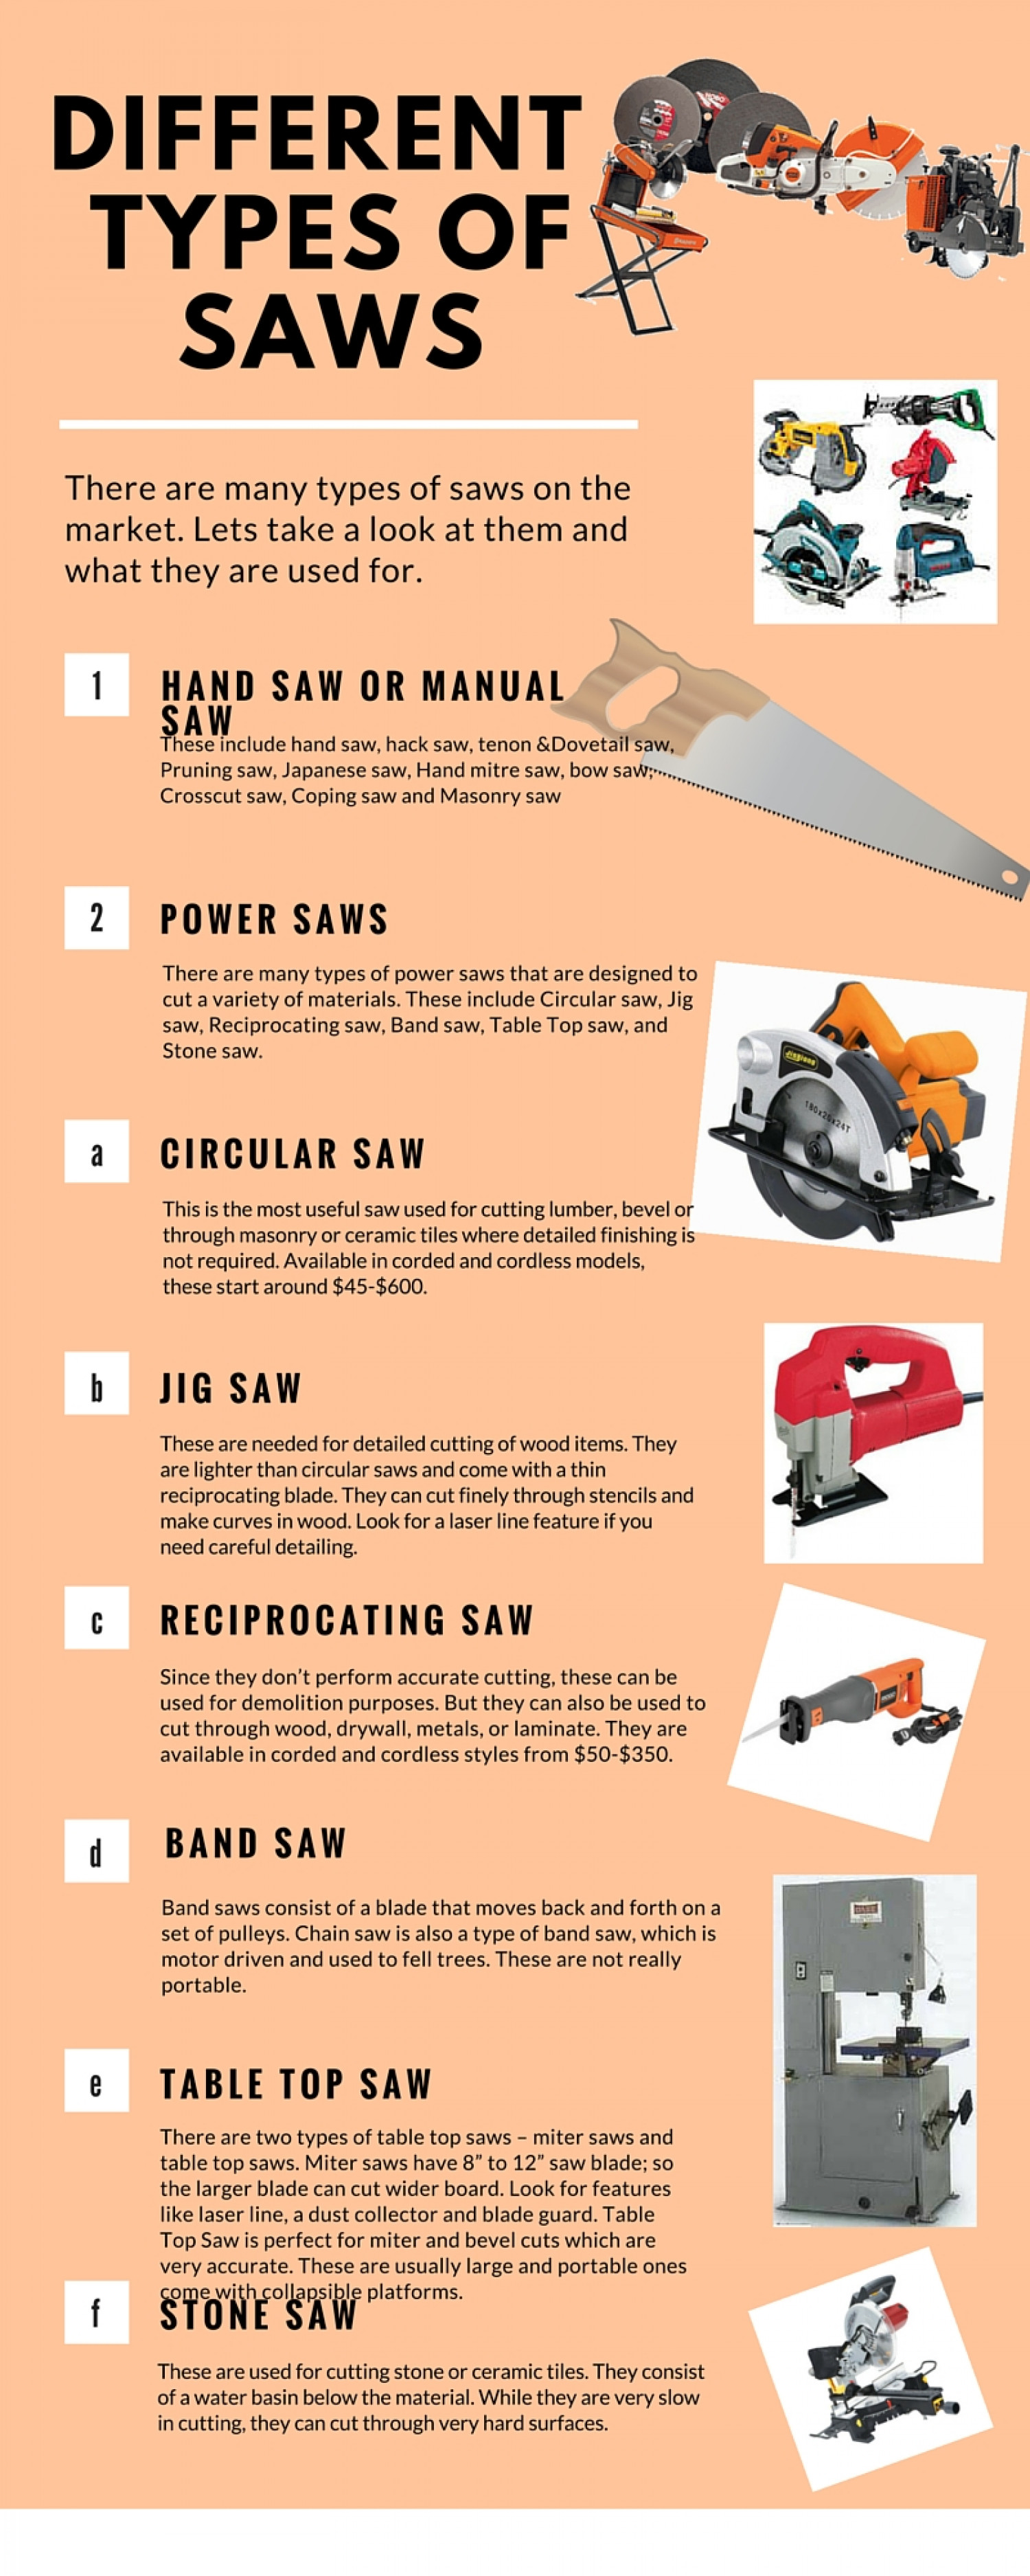 Different Types of Saws for Cutting Wood Infographic